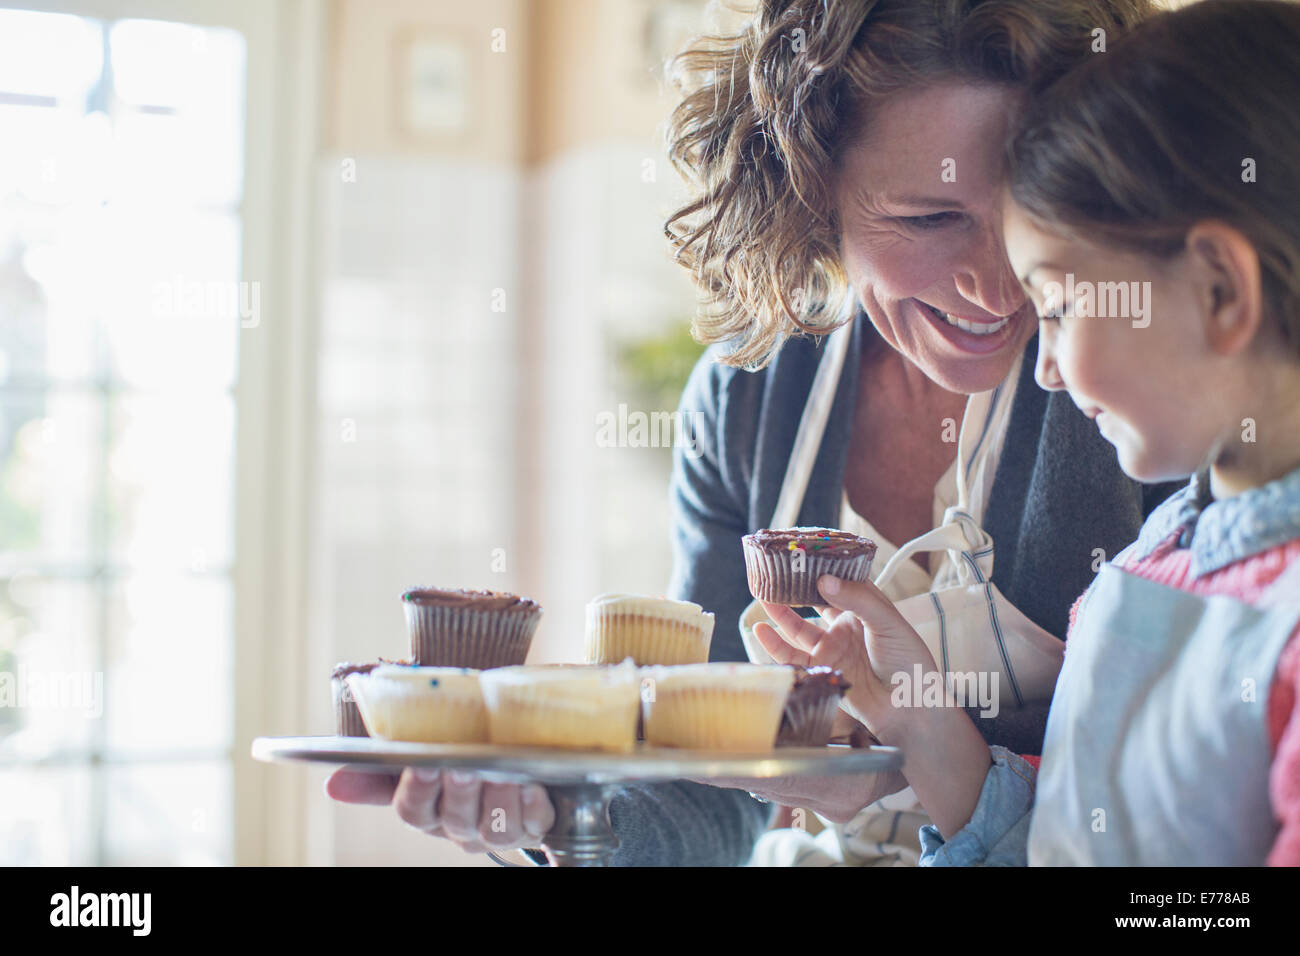 Grandmother offering granddaughter cupcakes - Stock Image